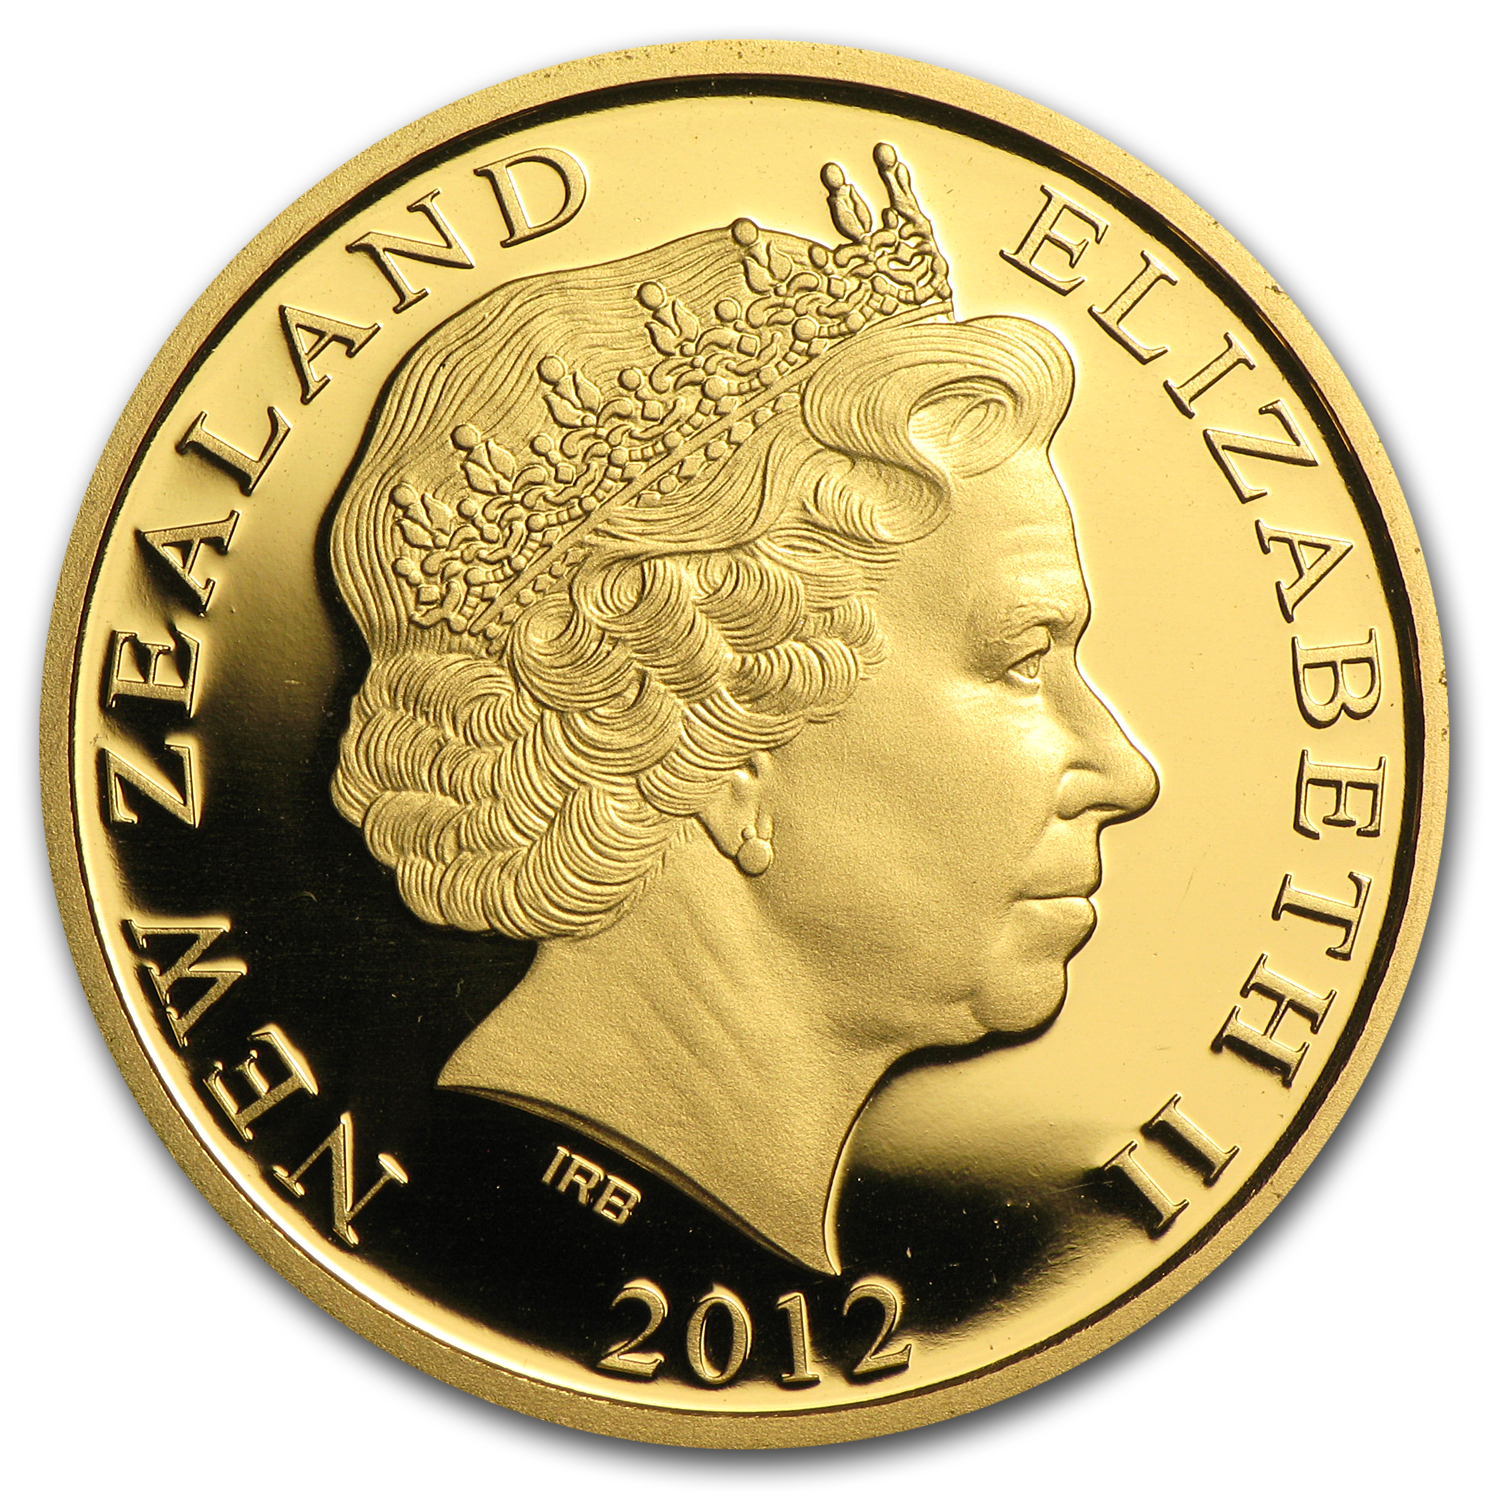 2012 New Zealand 1/4 oz Proof Gold Kowhai